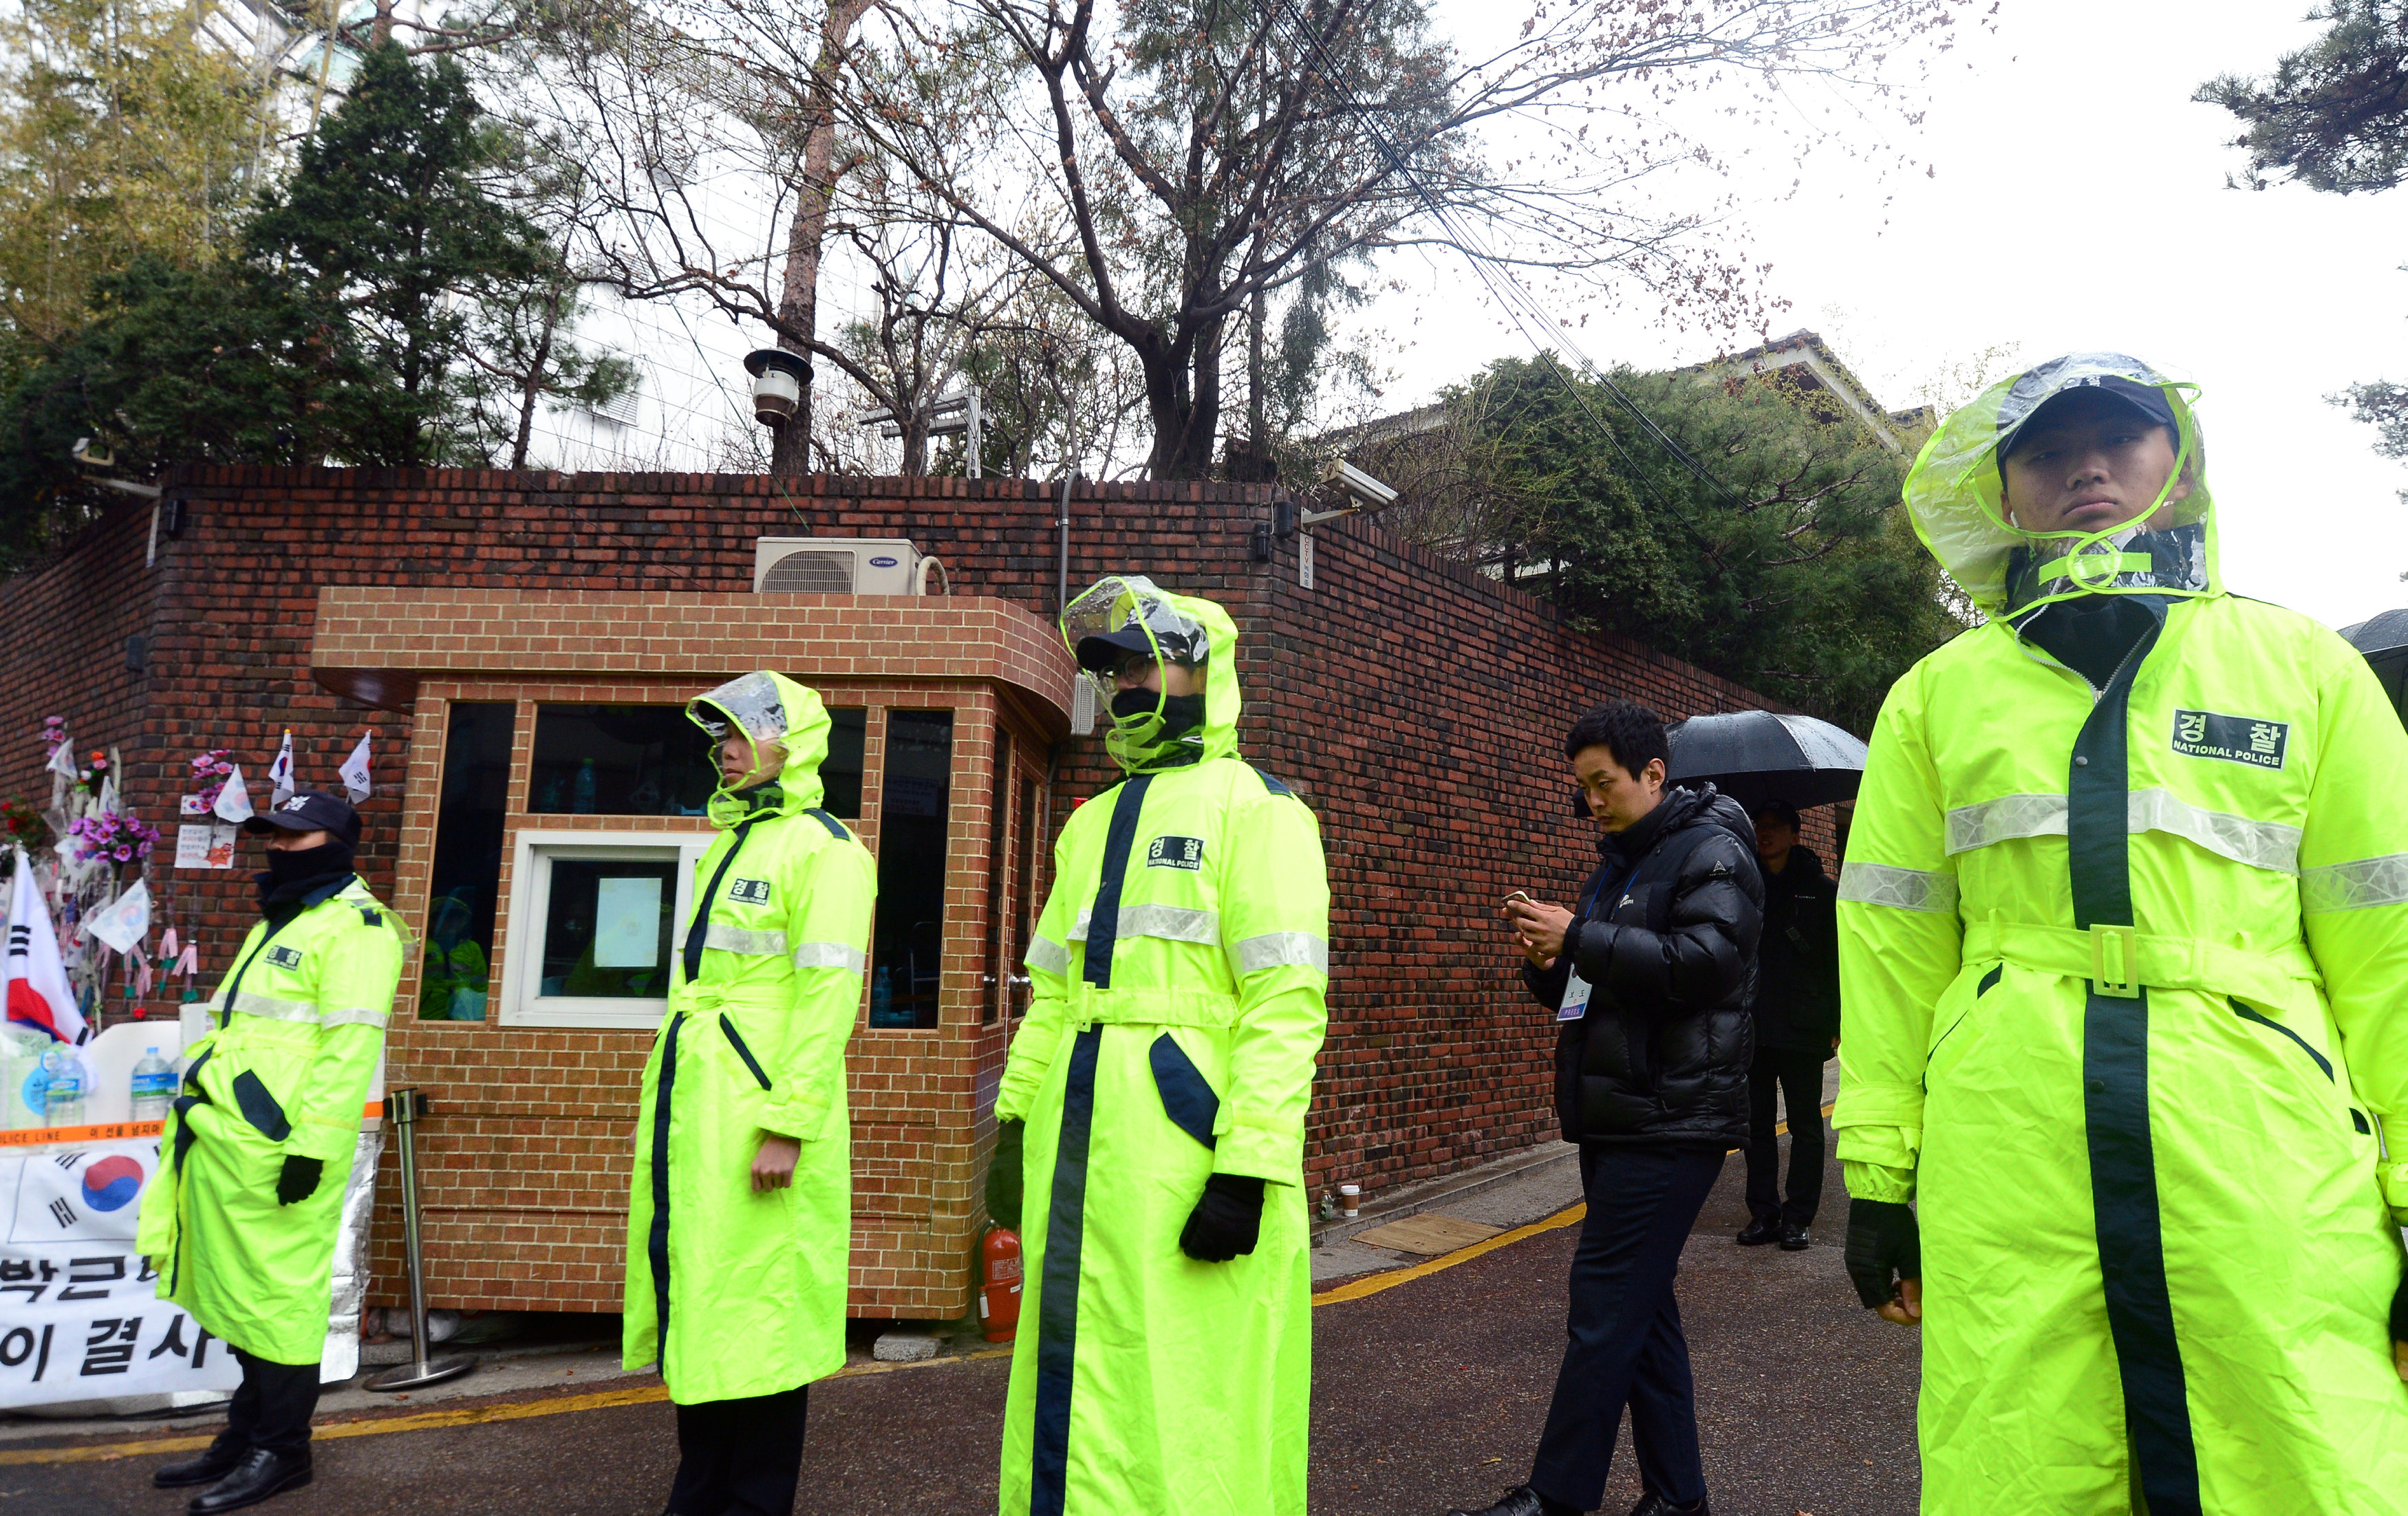 Policemen stand guard outside the house of South Korea's ousted leader Park Geun-hye in Seoul.  (Choi Hyun-kyu/News1 via REUTERS)